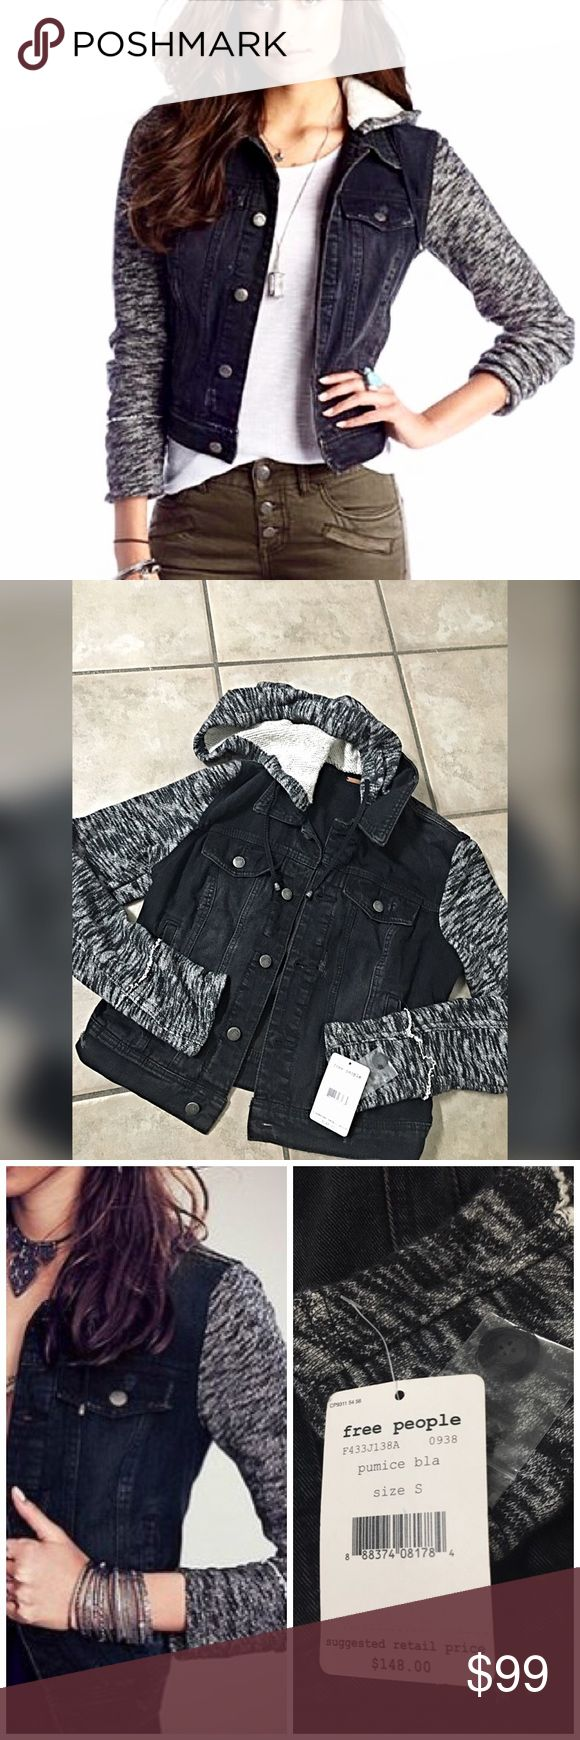 Free People Multimedia hooded Denim jean jacket Distressed denim jacket with attached knit sleeves and hood. Button front closure and two front slit pockets. All over roughed look. A cool piece to add a tomboy edge to any look.  *100% Cotton *Machine Wash Cold- in Pumice Black Free People Jackets & Coats Jean Jackets